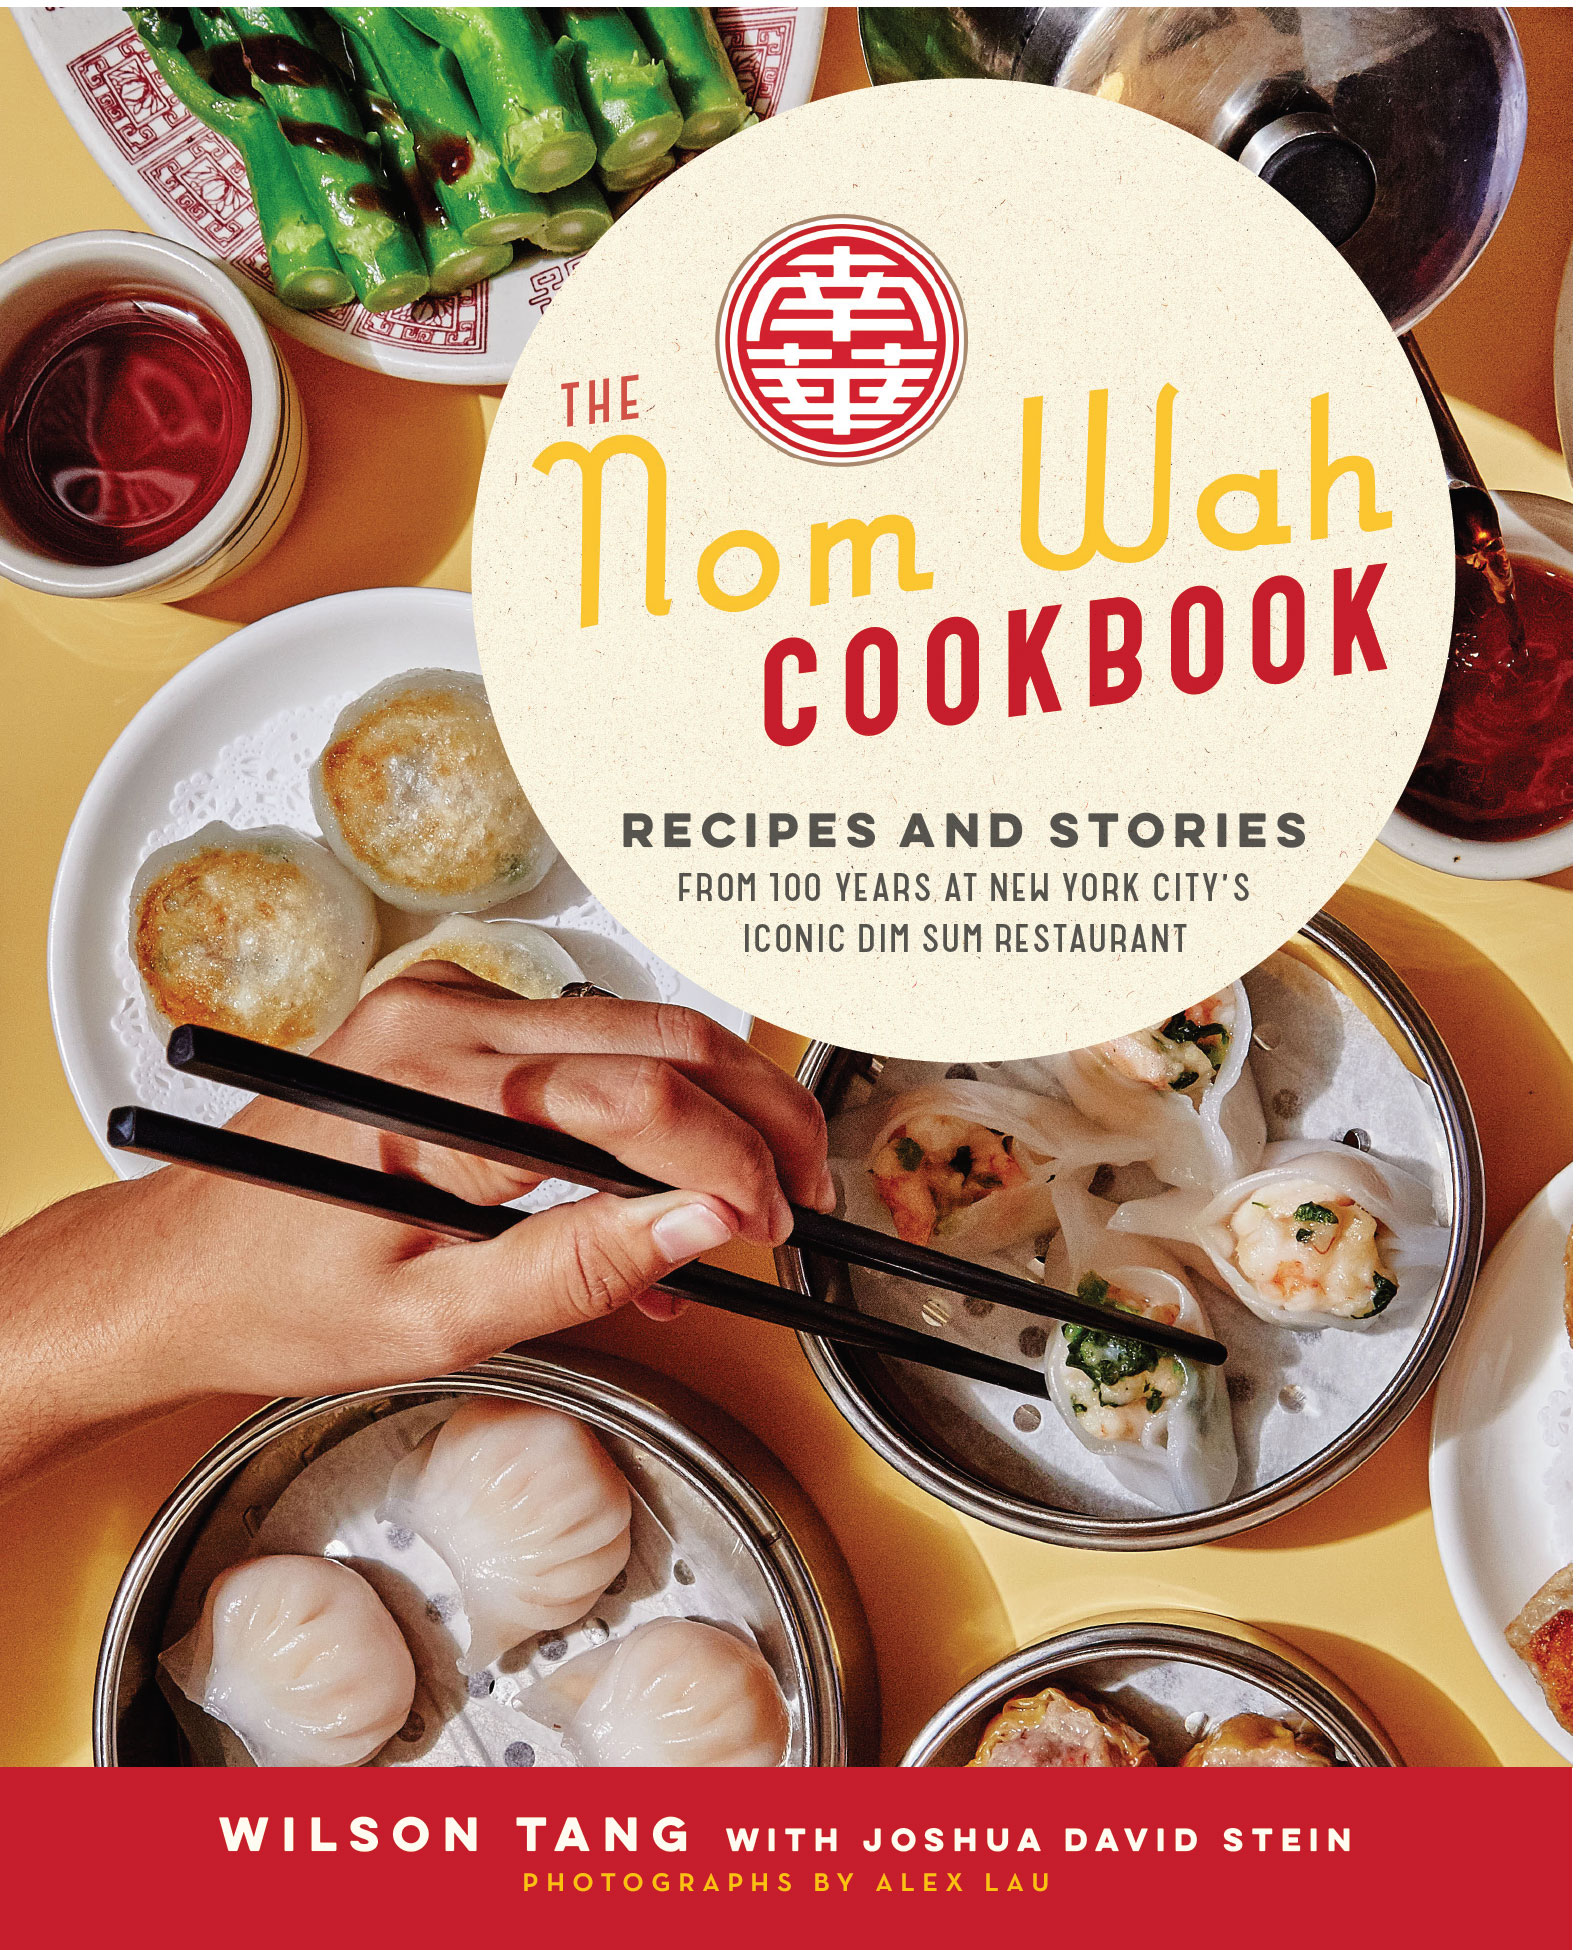 The Nom Wah Cookbook by Wilson Tang with Joshua David Stein